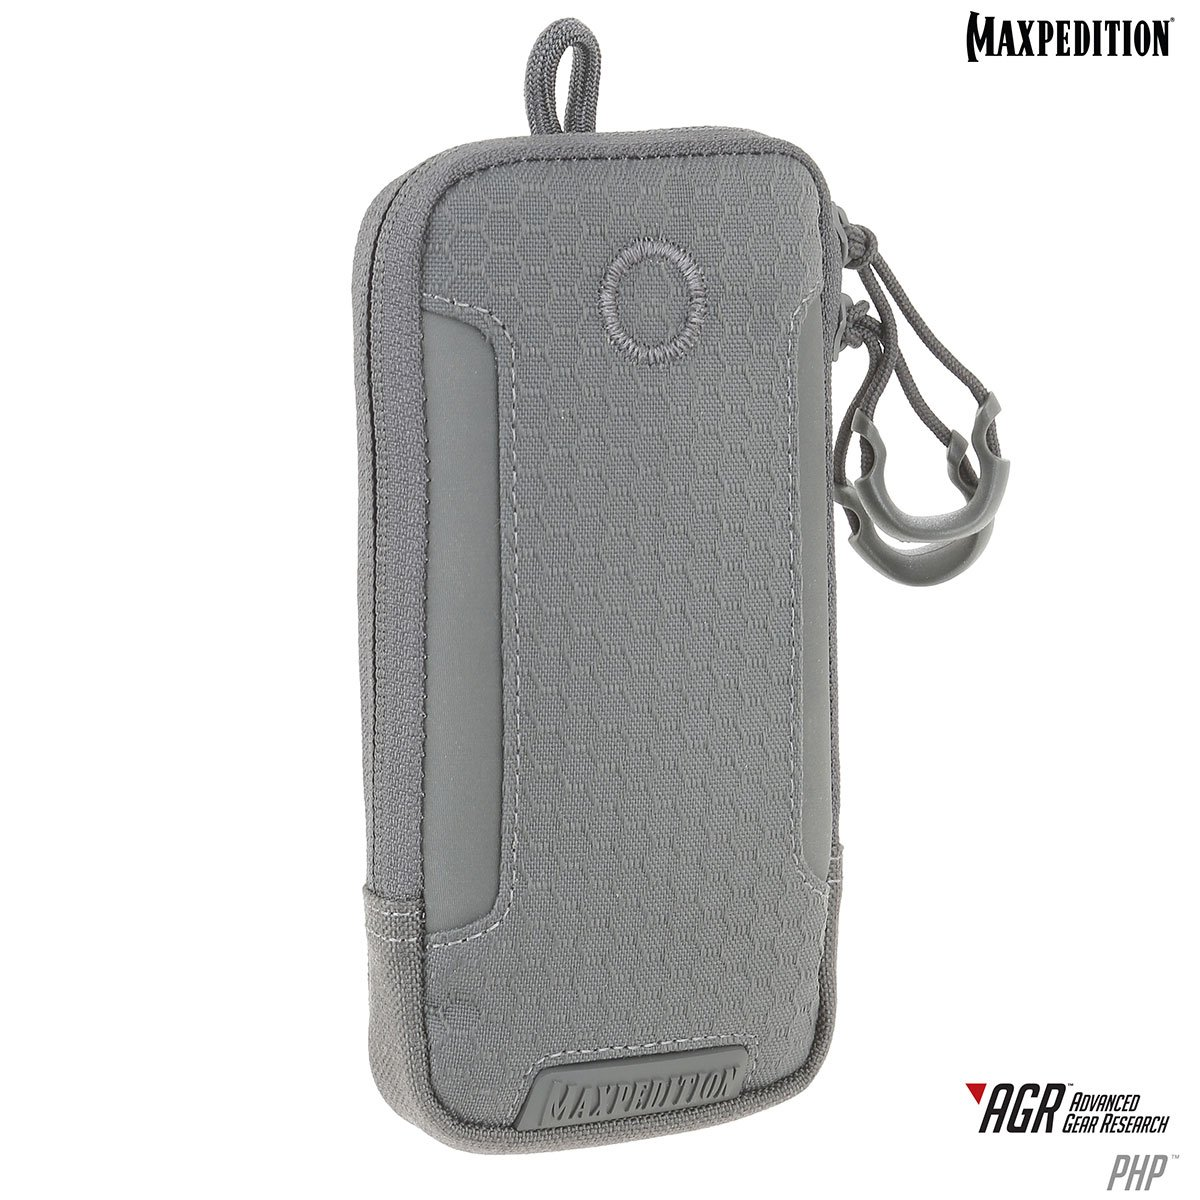 Maxpedition PHP iPhone 6 Pouch – Black